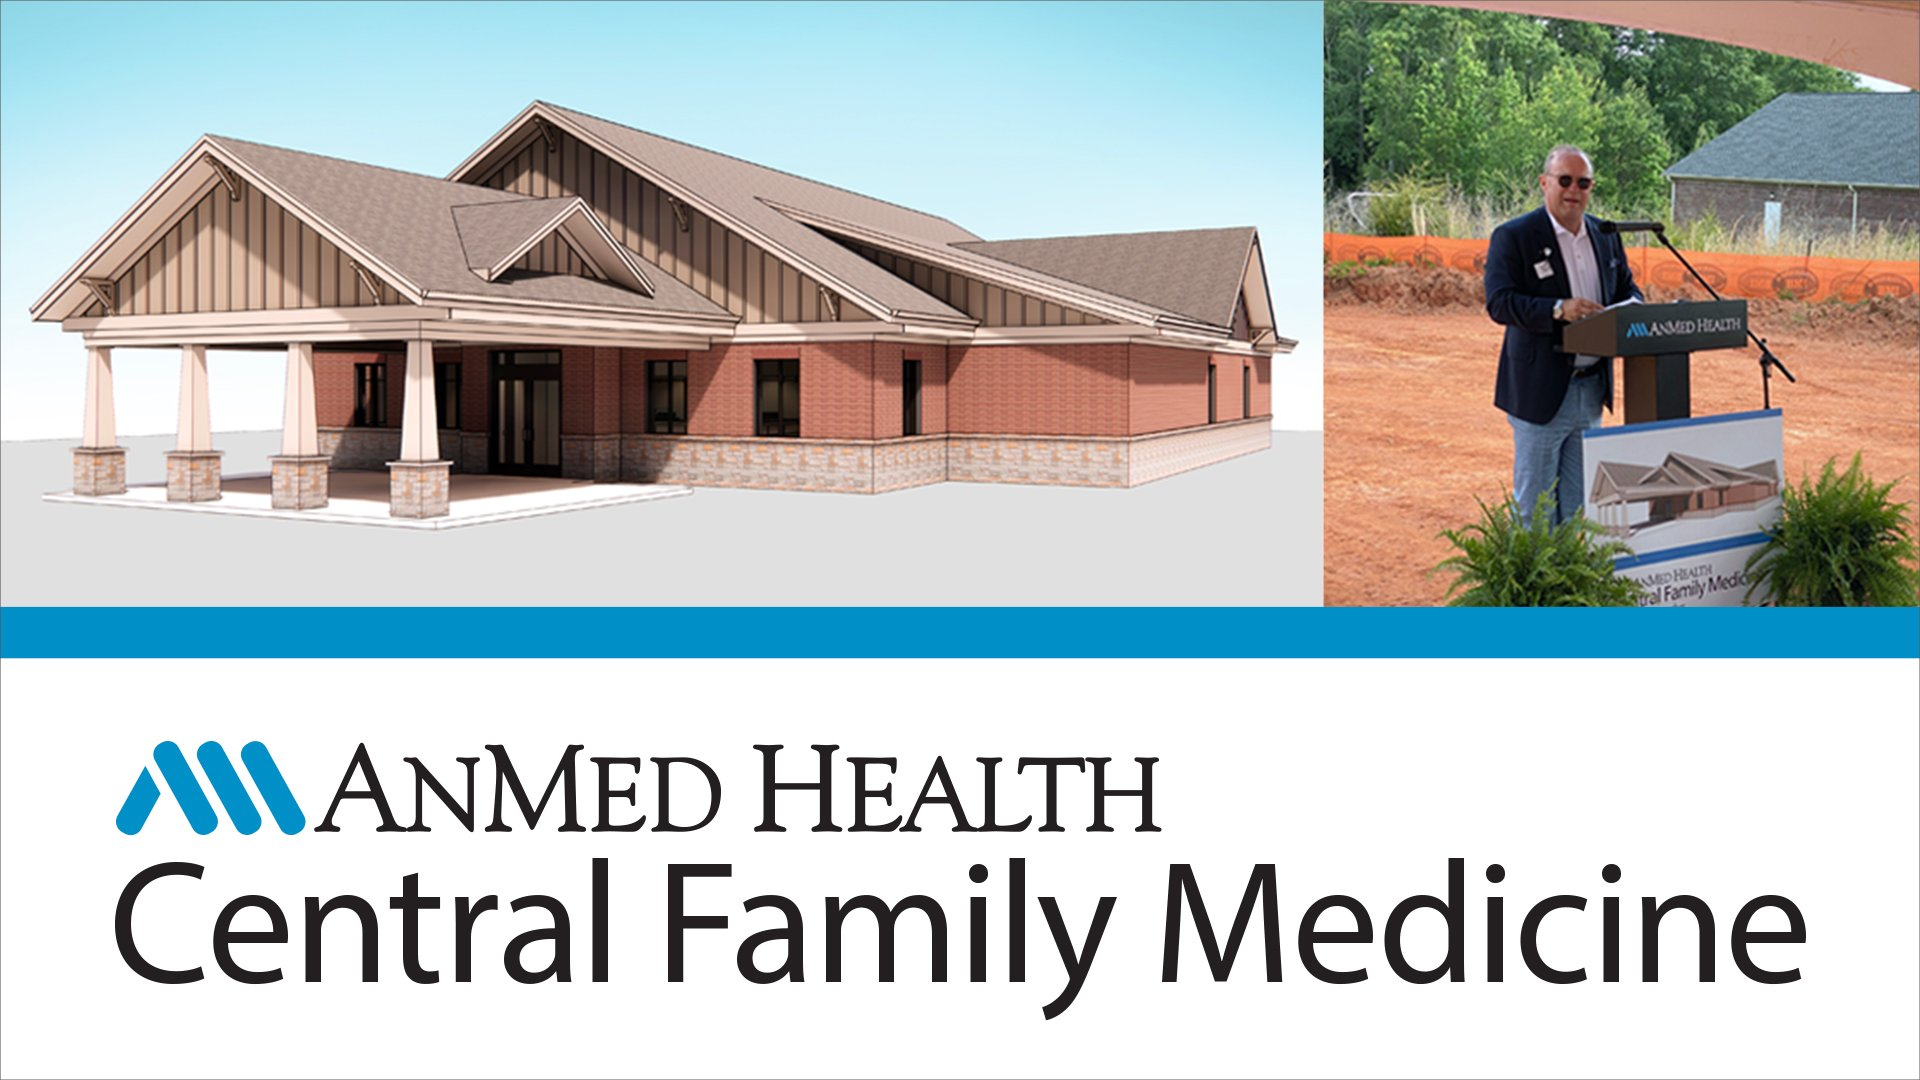 Construction Begins on New AnMed Health Central Family Medicine Building